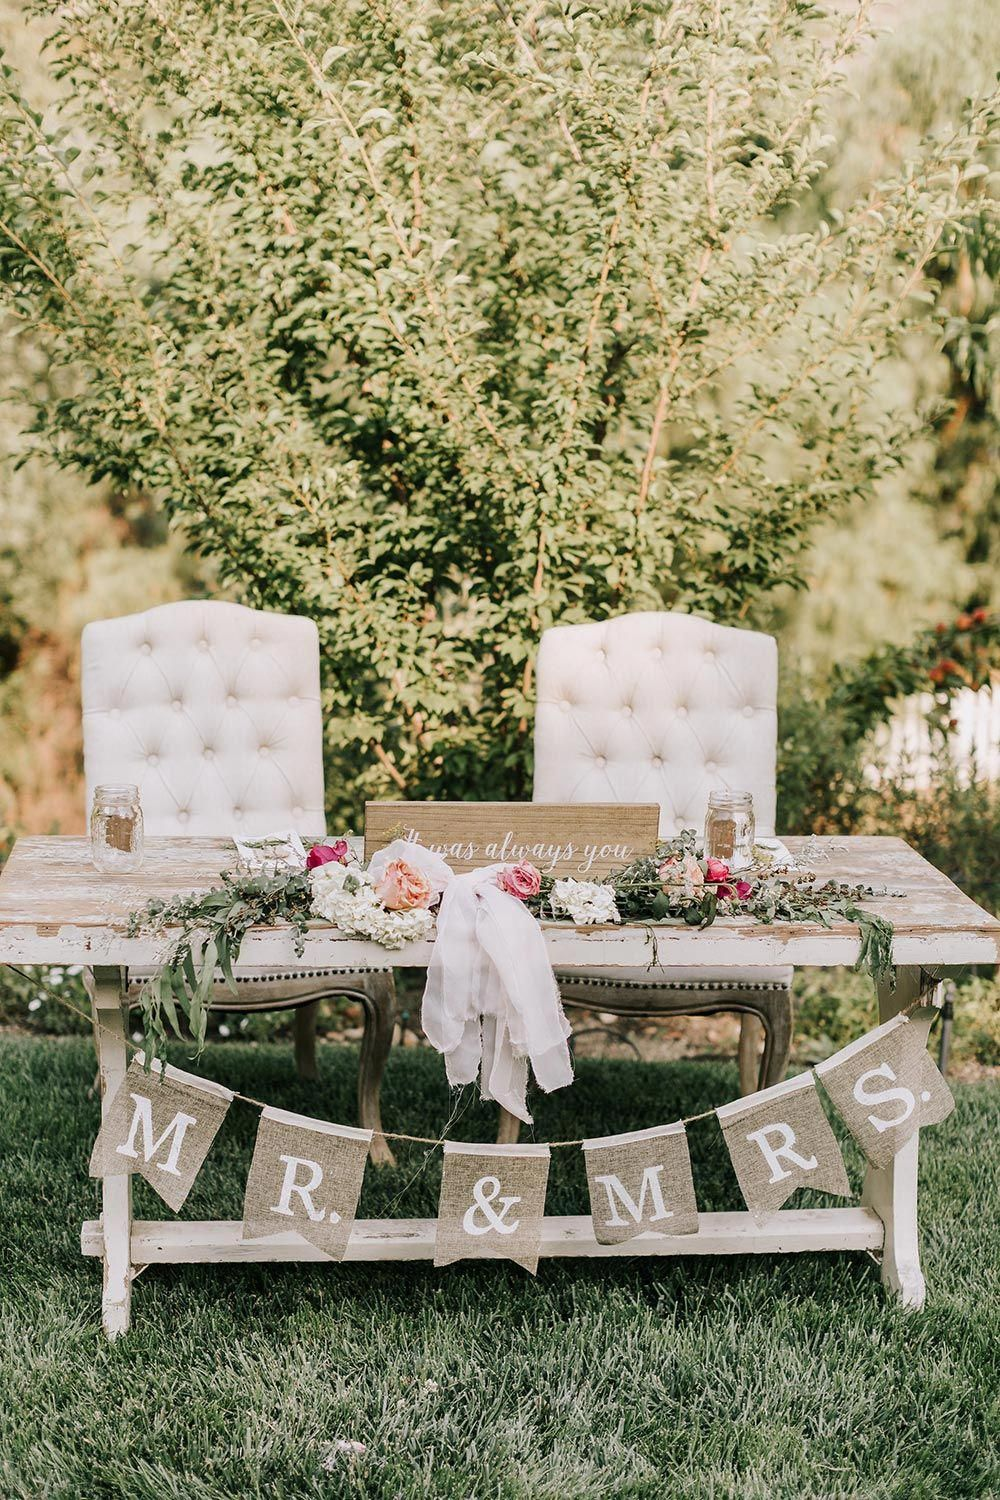 Rustic chic weddings for a very memorable wedding moment ...